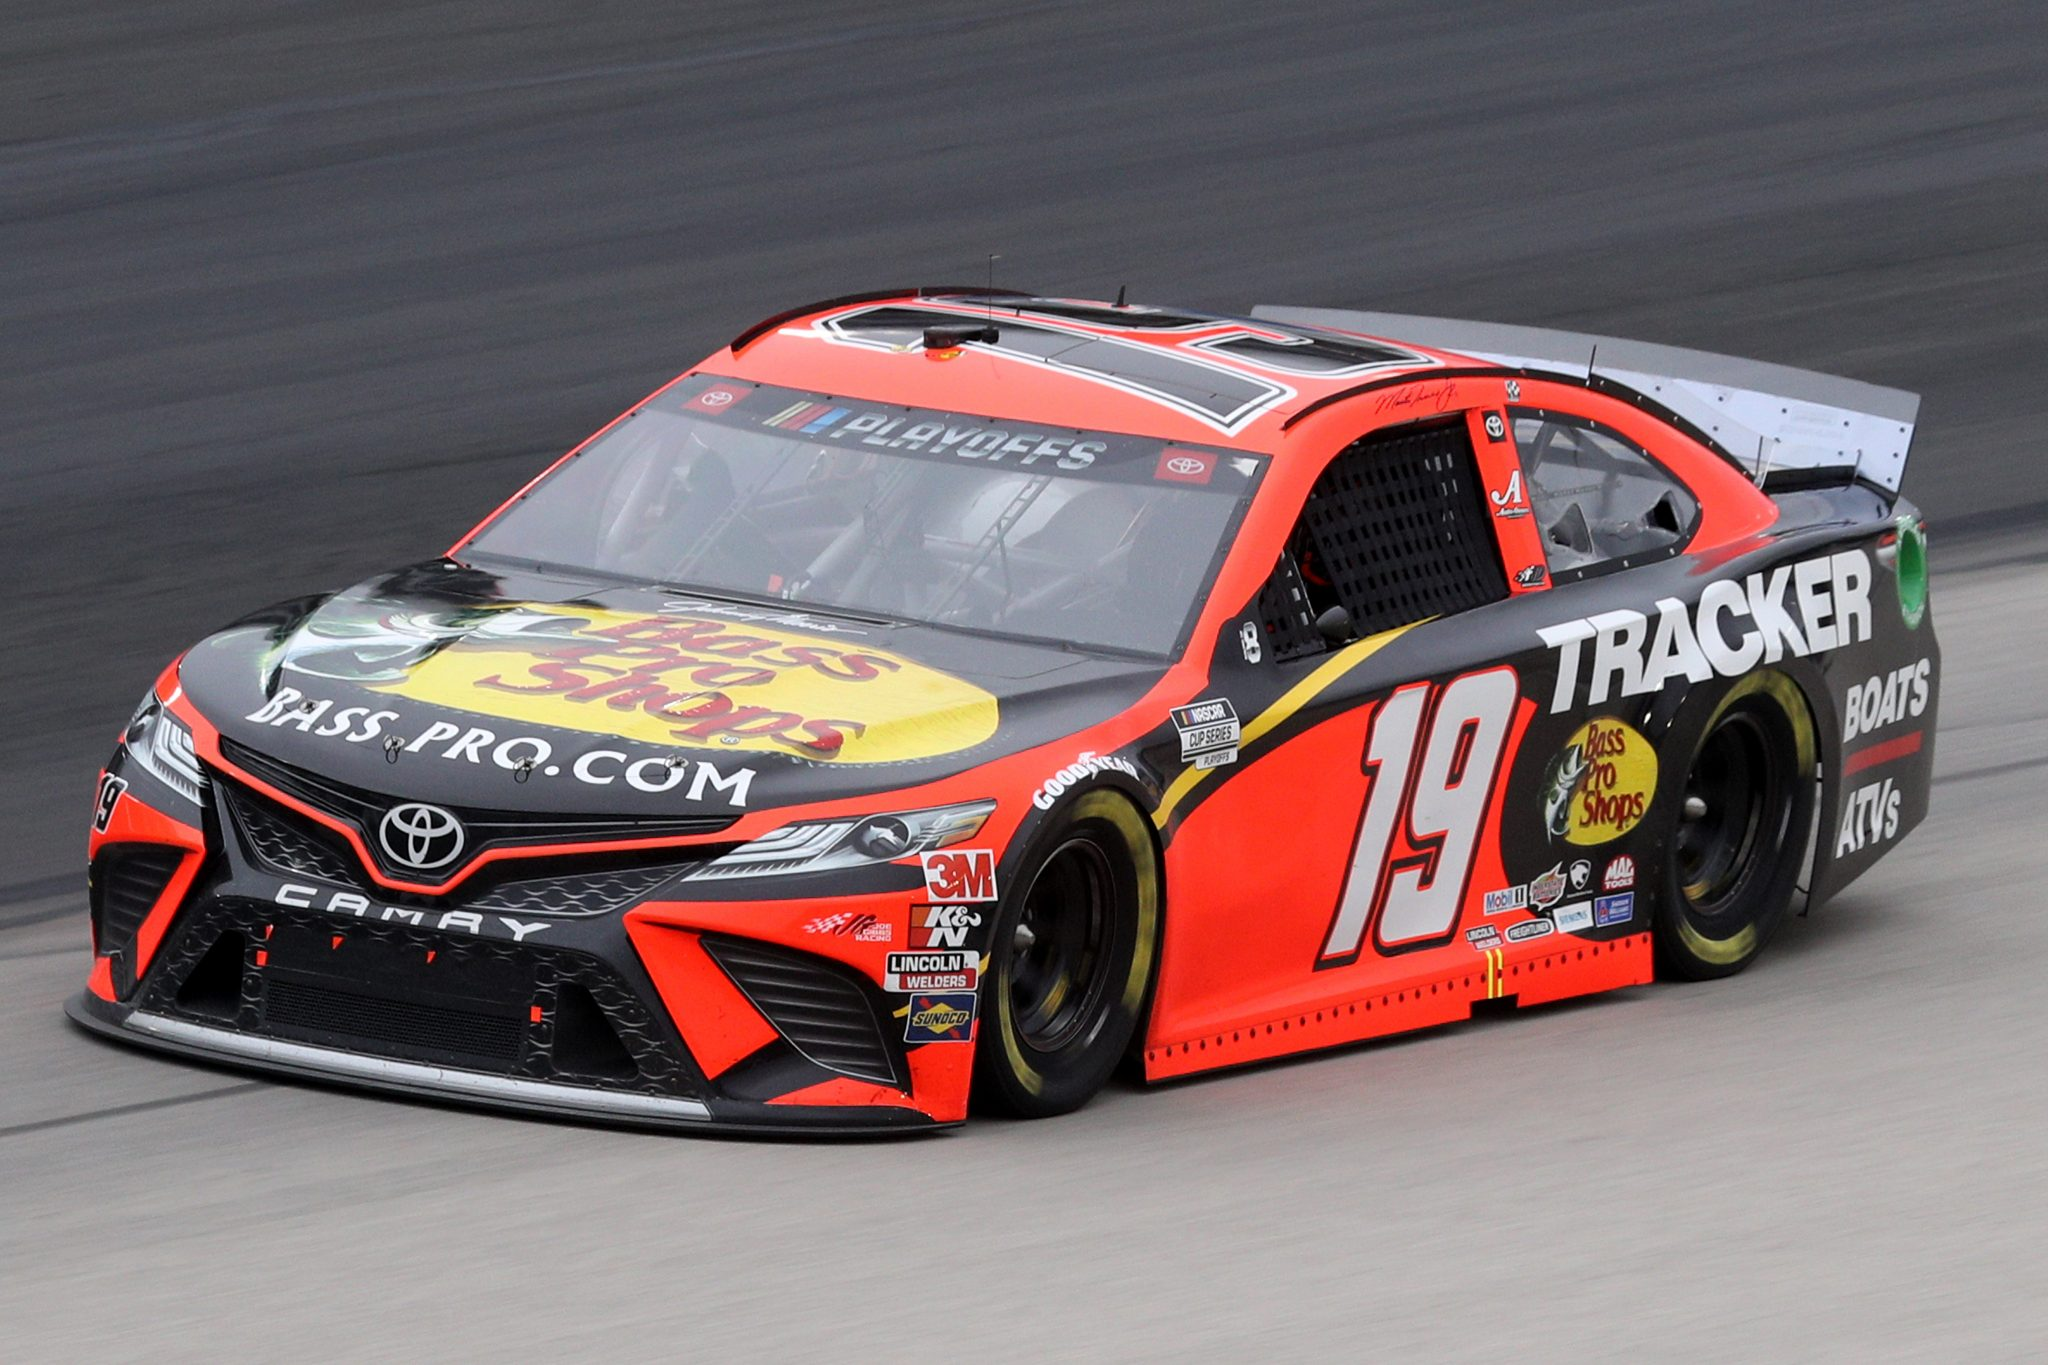 FORT WORTH, TEXAS - OCTOBER 28: Martin Truex Jr., driver of the #19 Bass Pro Shops Toyota, drives during the NASCAR Cup Series Autotrader EchoPark Automotive 500 at Texas Motor Speedway on October 28, 2020 in Fort Worth, Texas. (Photo by Chris Graythen/Getty Images) | Getty Images